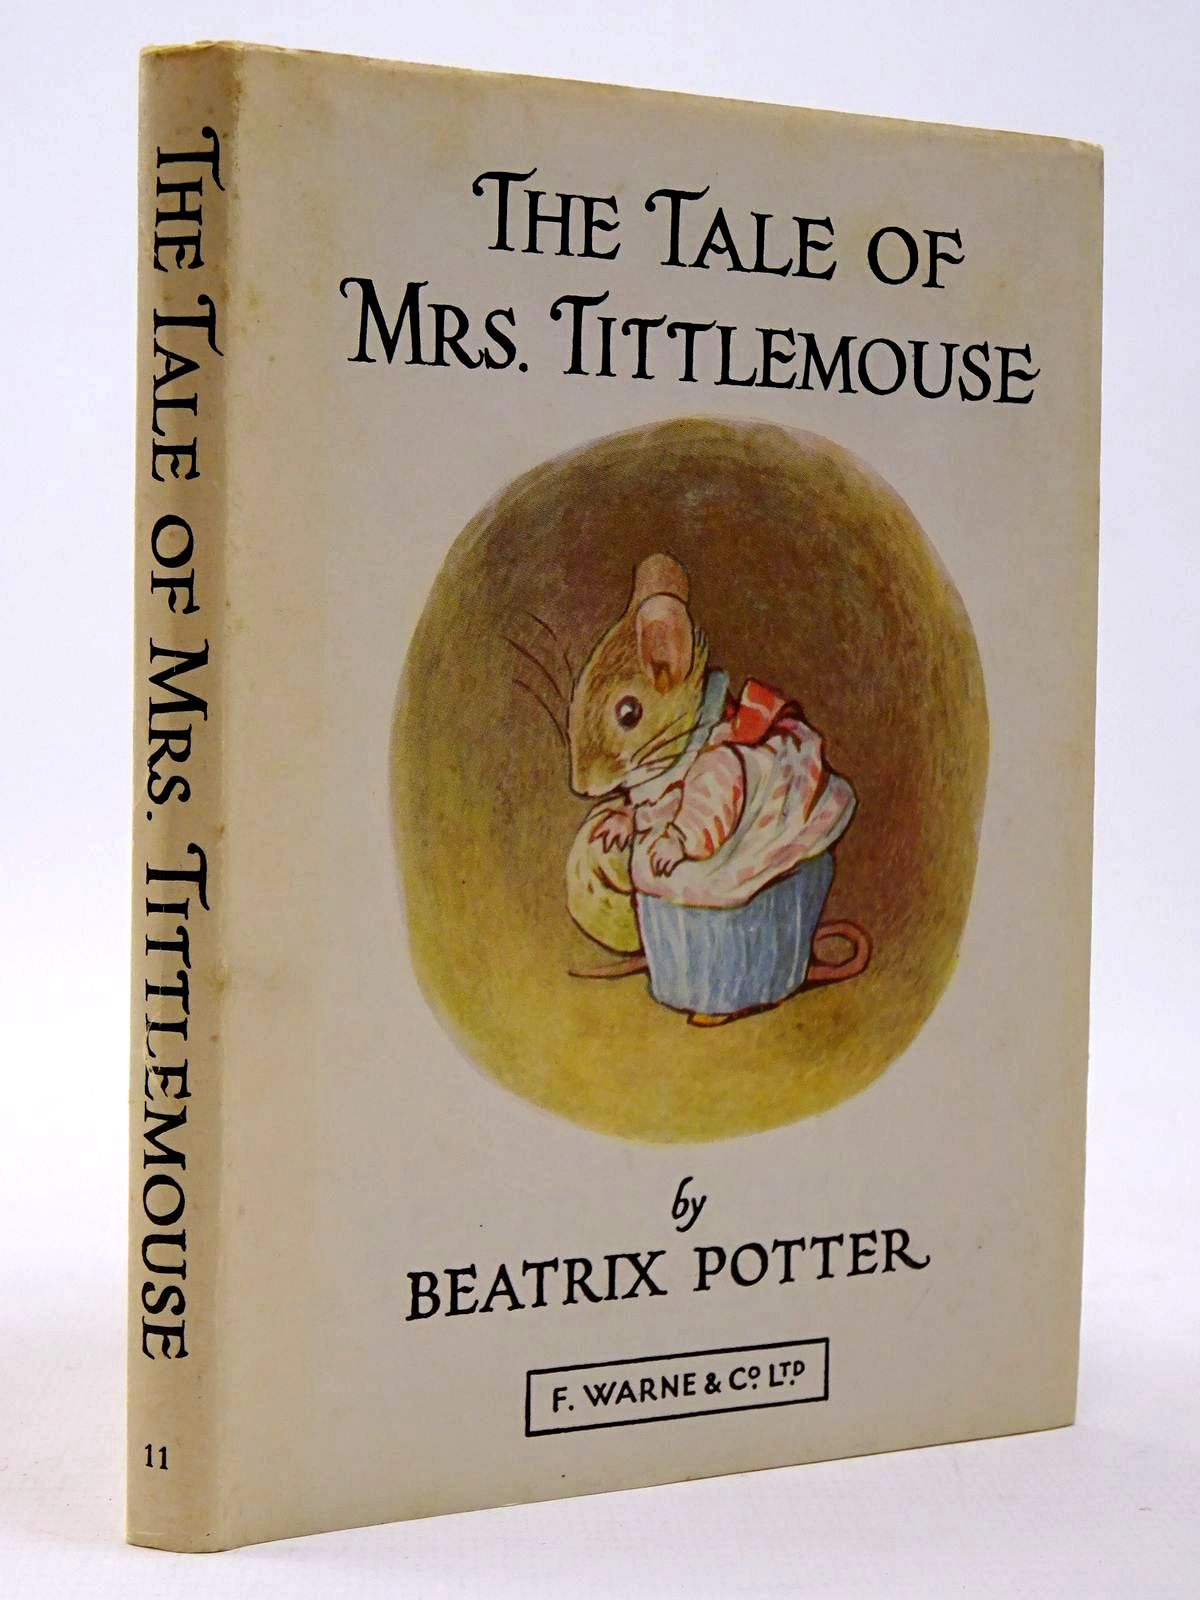 Photo of THE TALE OF MRS. TITTLEMOUSE written by Potter, Beatrix illustrated by Potter, Beatrix published by Frederick Warne & Co Ltd. (STOCK CODE: 2129987)  for sale by Stella & Rose's Books